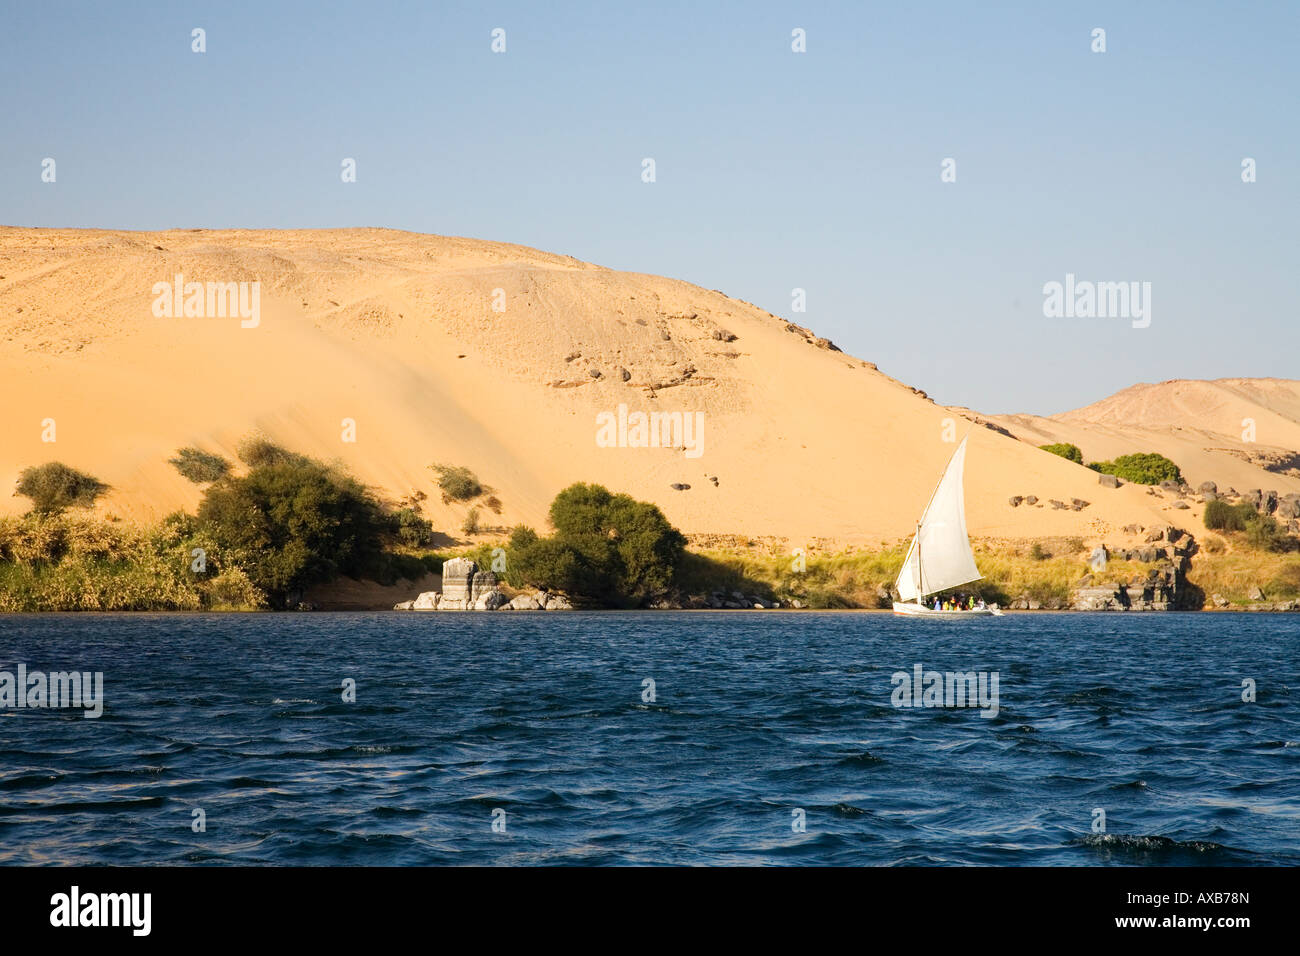 Felucca boat sailing on the River Nile Aswan Upper Egypt North Africa Middle East - Stock Image